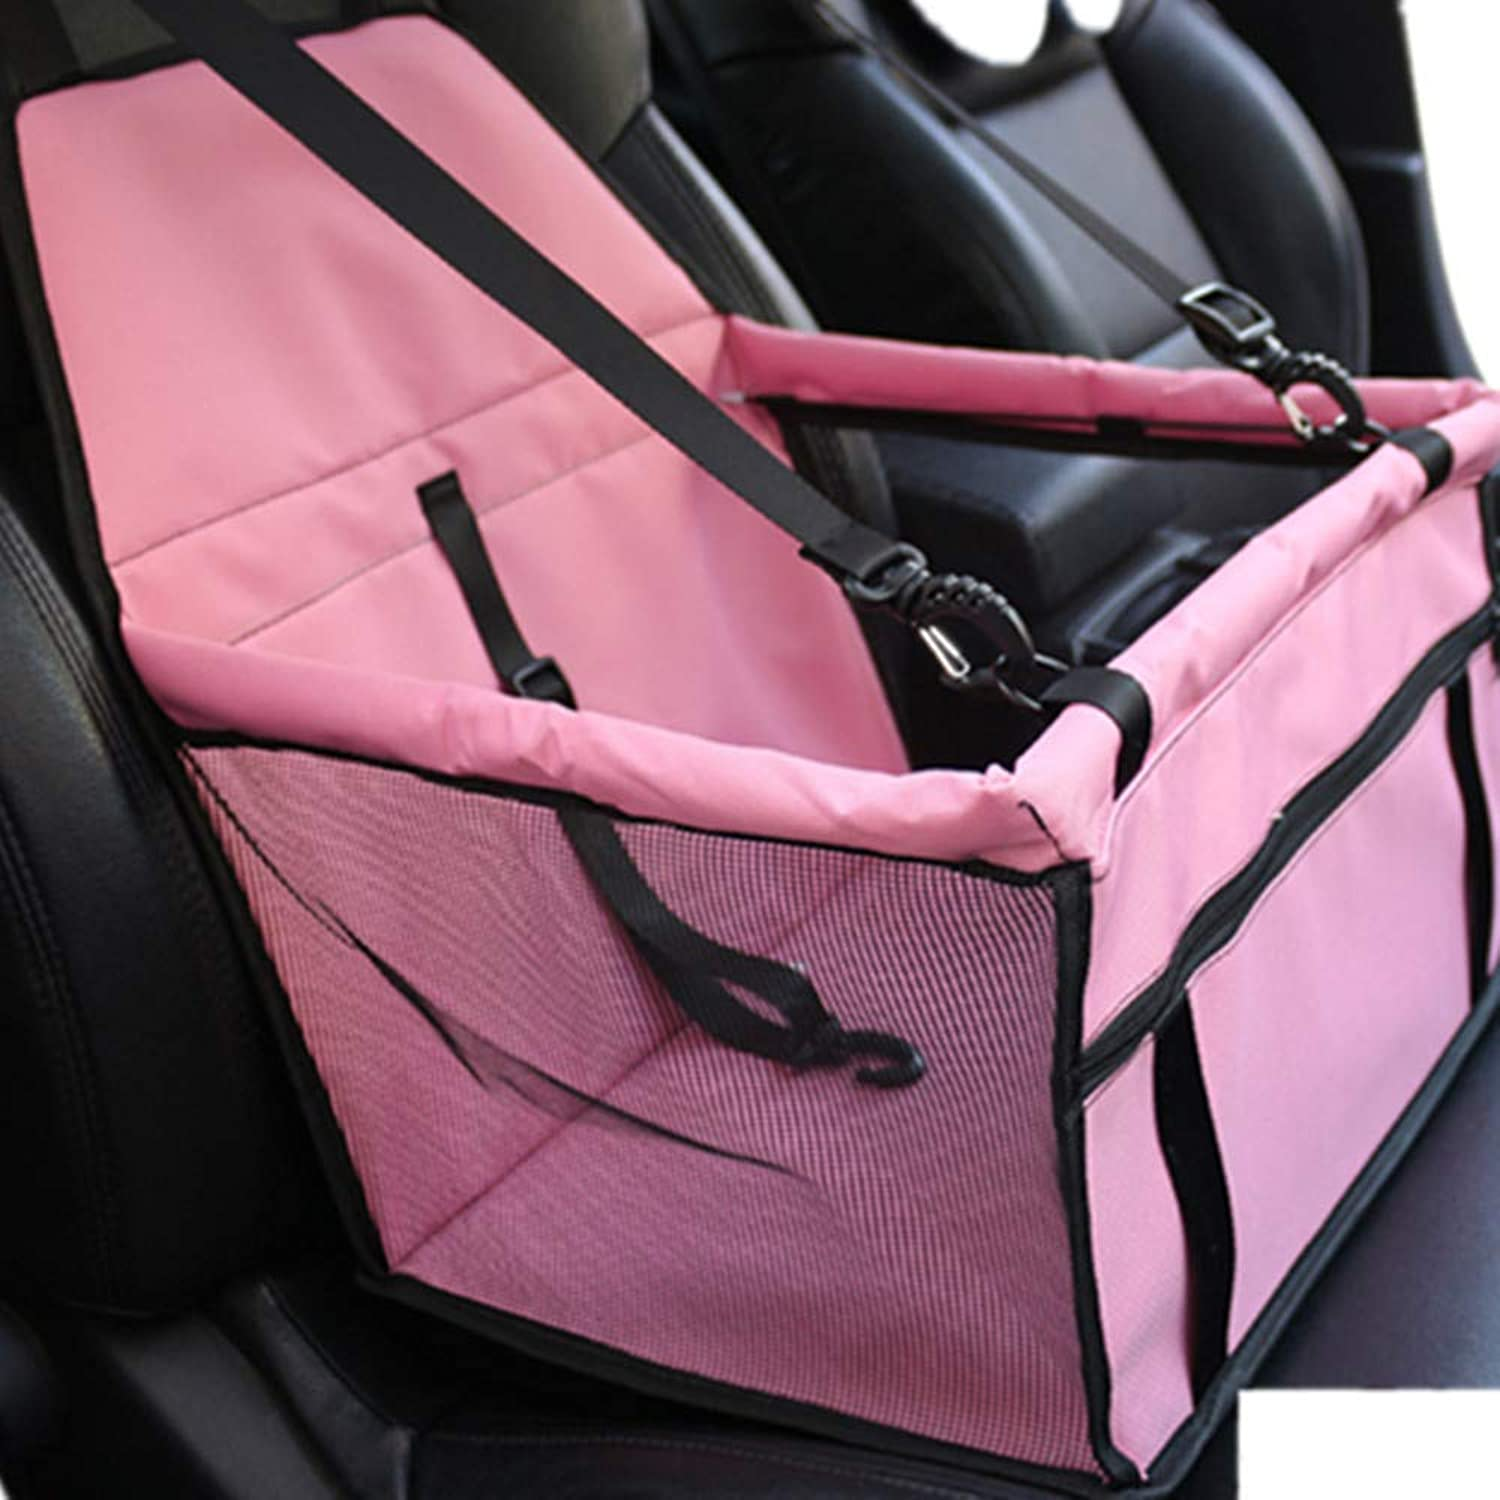 Pet Bag Breathable Waterproof DoubleLayer Wagon Pad Pet Height Seat Thickening Support Bar Suitable for Small Dogs and Cats